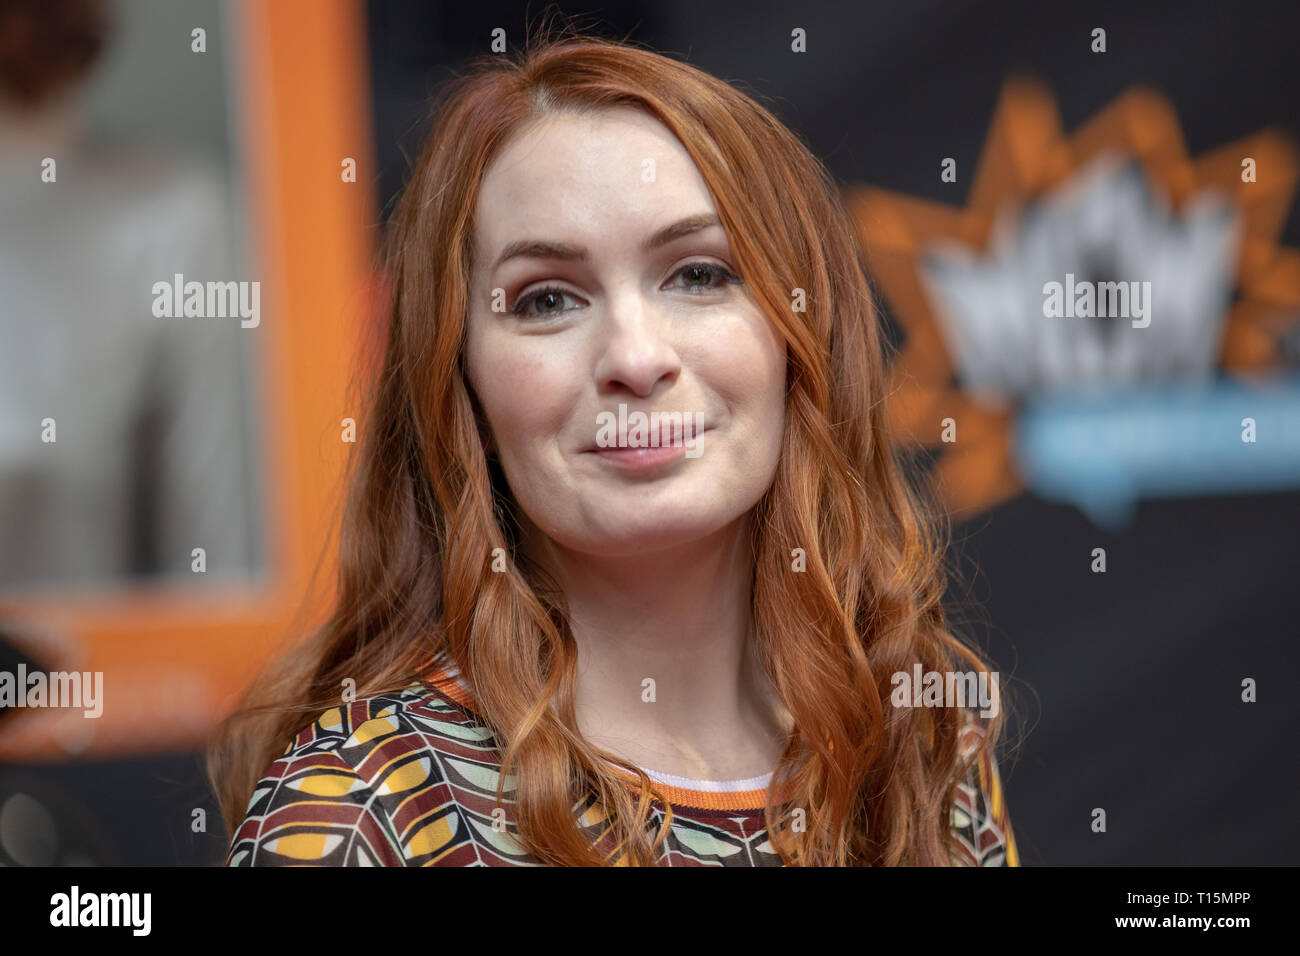 Birmingham, UK. Saturday 23 March 2019. Felicia Day during an autograph session  on the 1st day of the MCM Comic Con Birmingham at the NEC  , © Jason Richardson / Alamy Live News - Stock Image